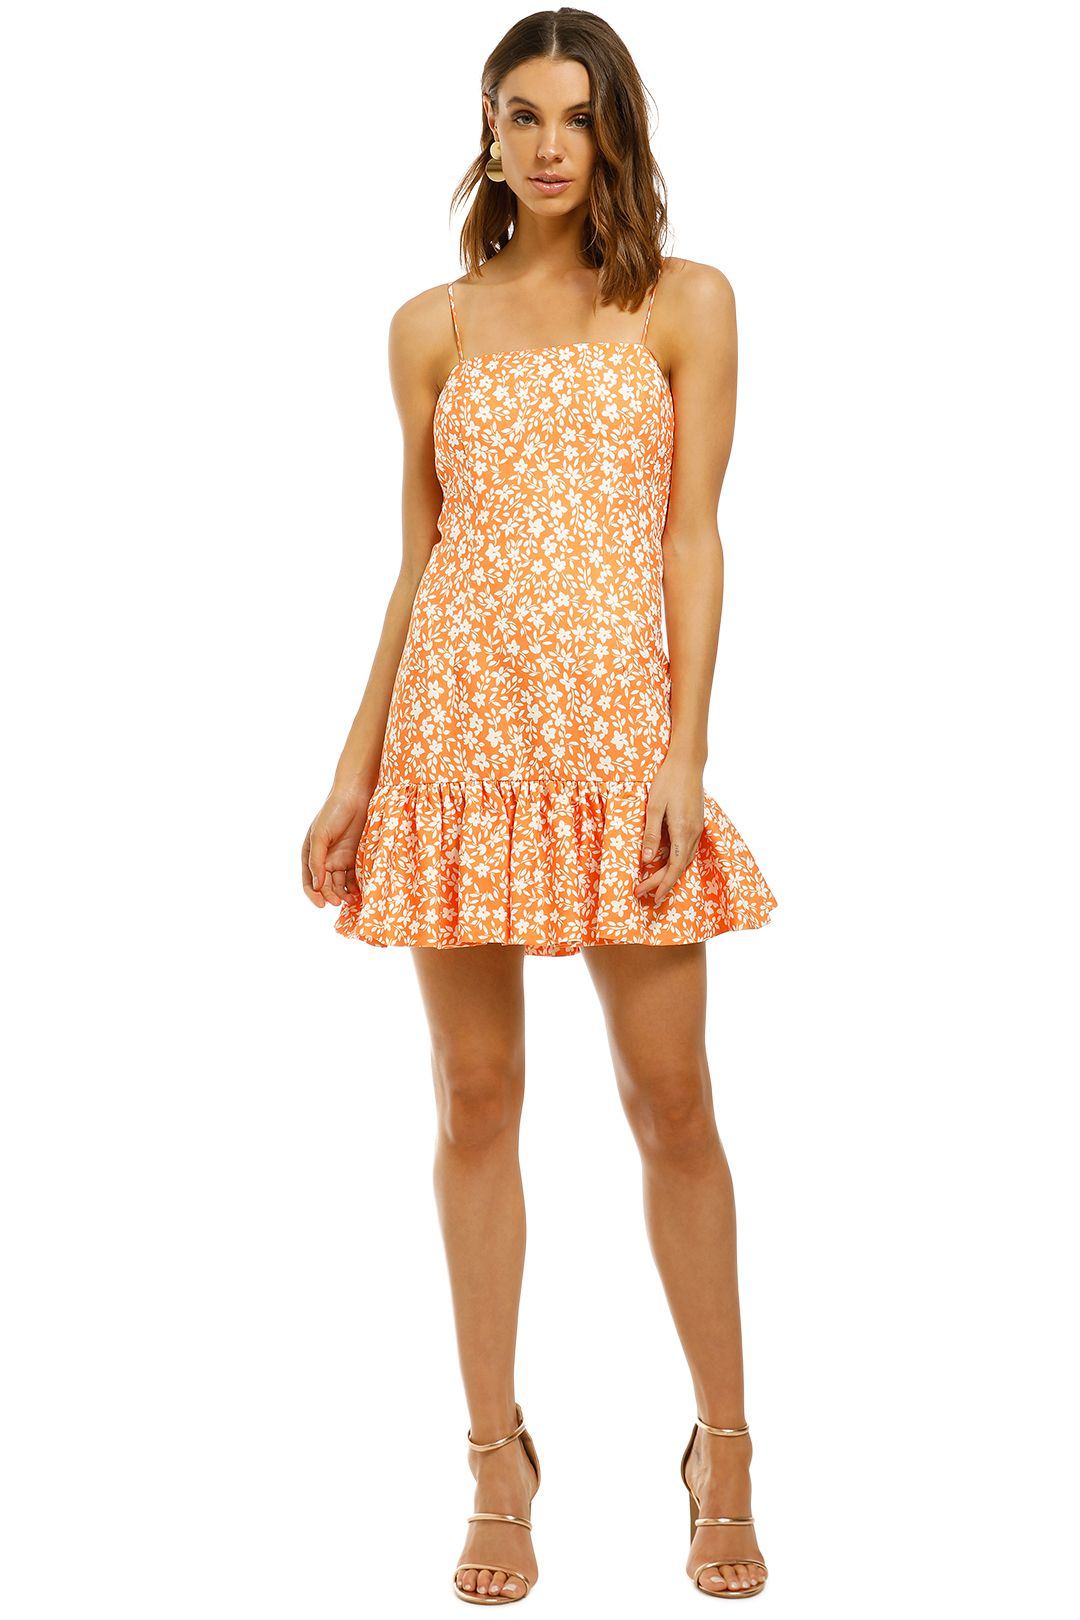 By-Johnny-Lola-Frill-Mini-Shift-Dress-Front